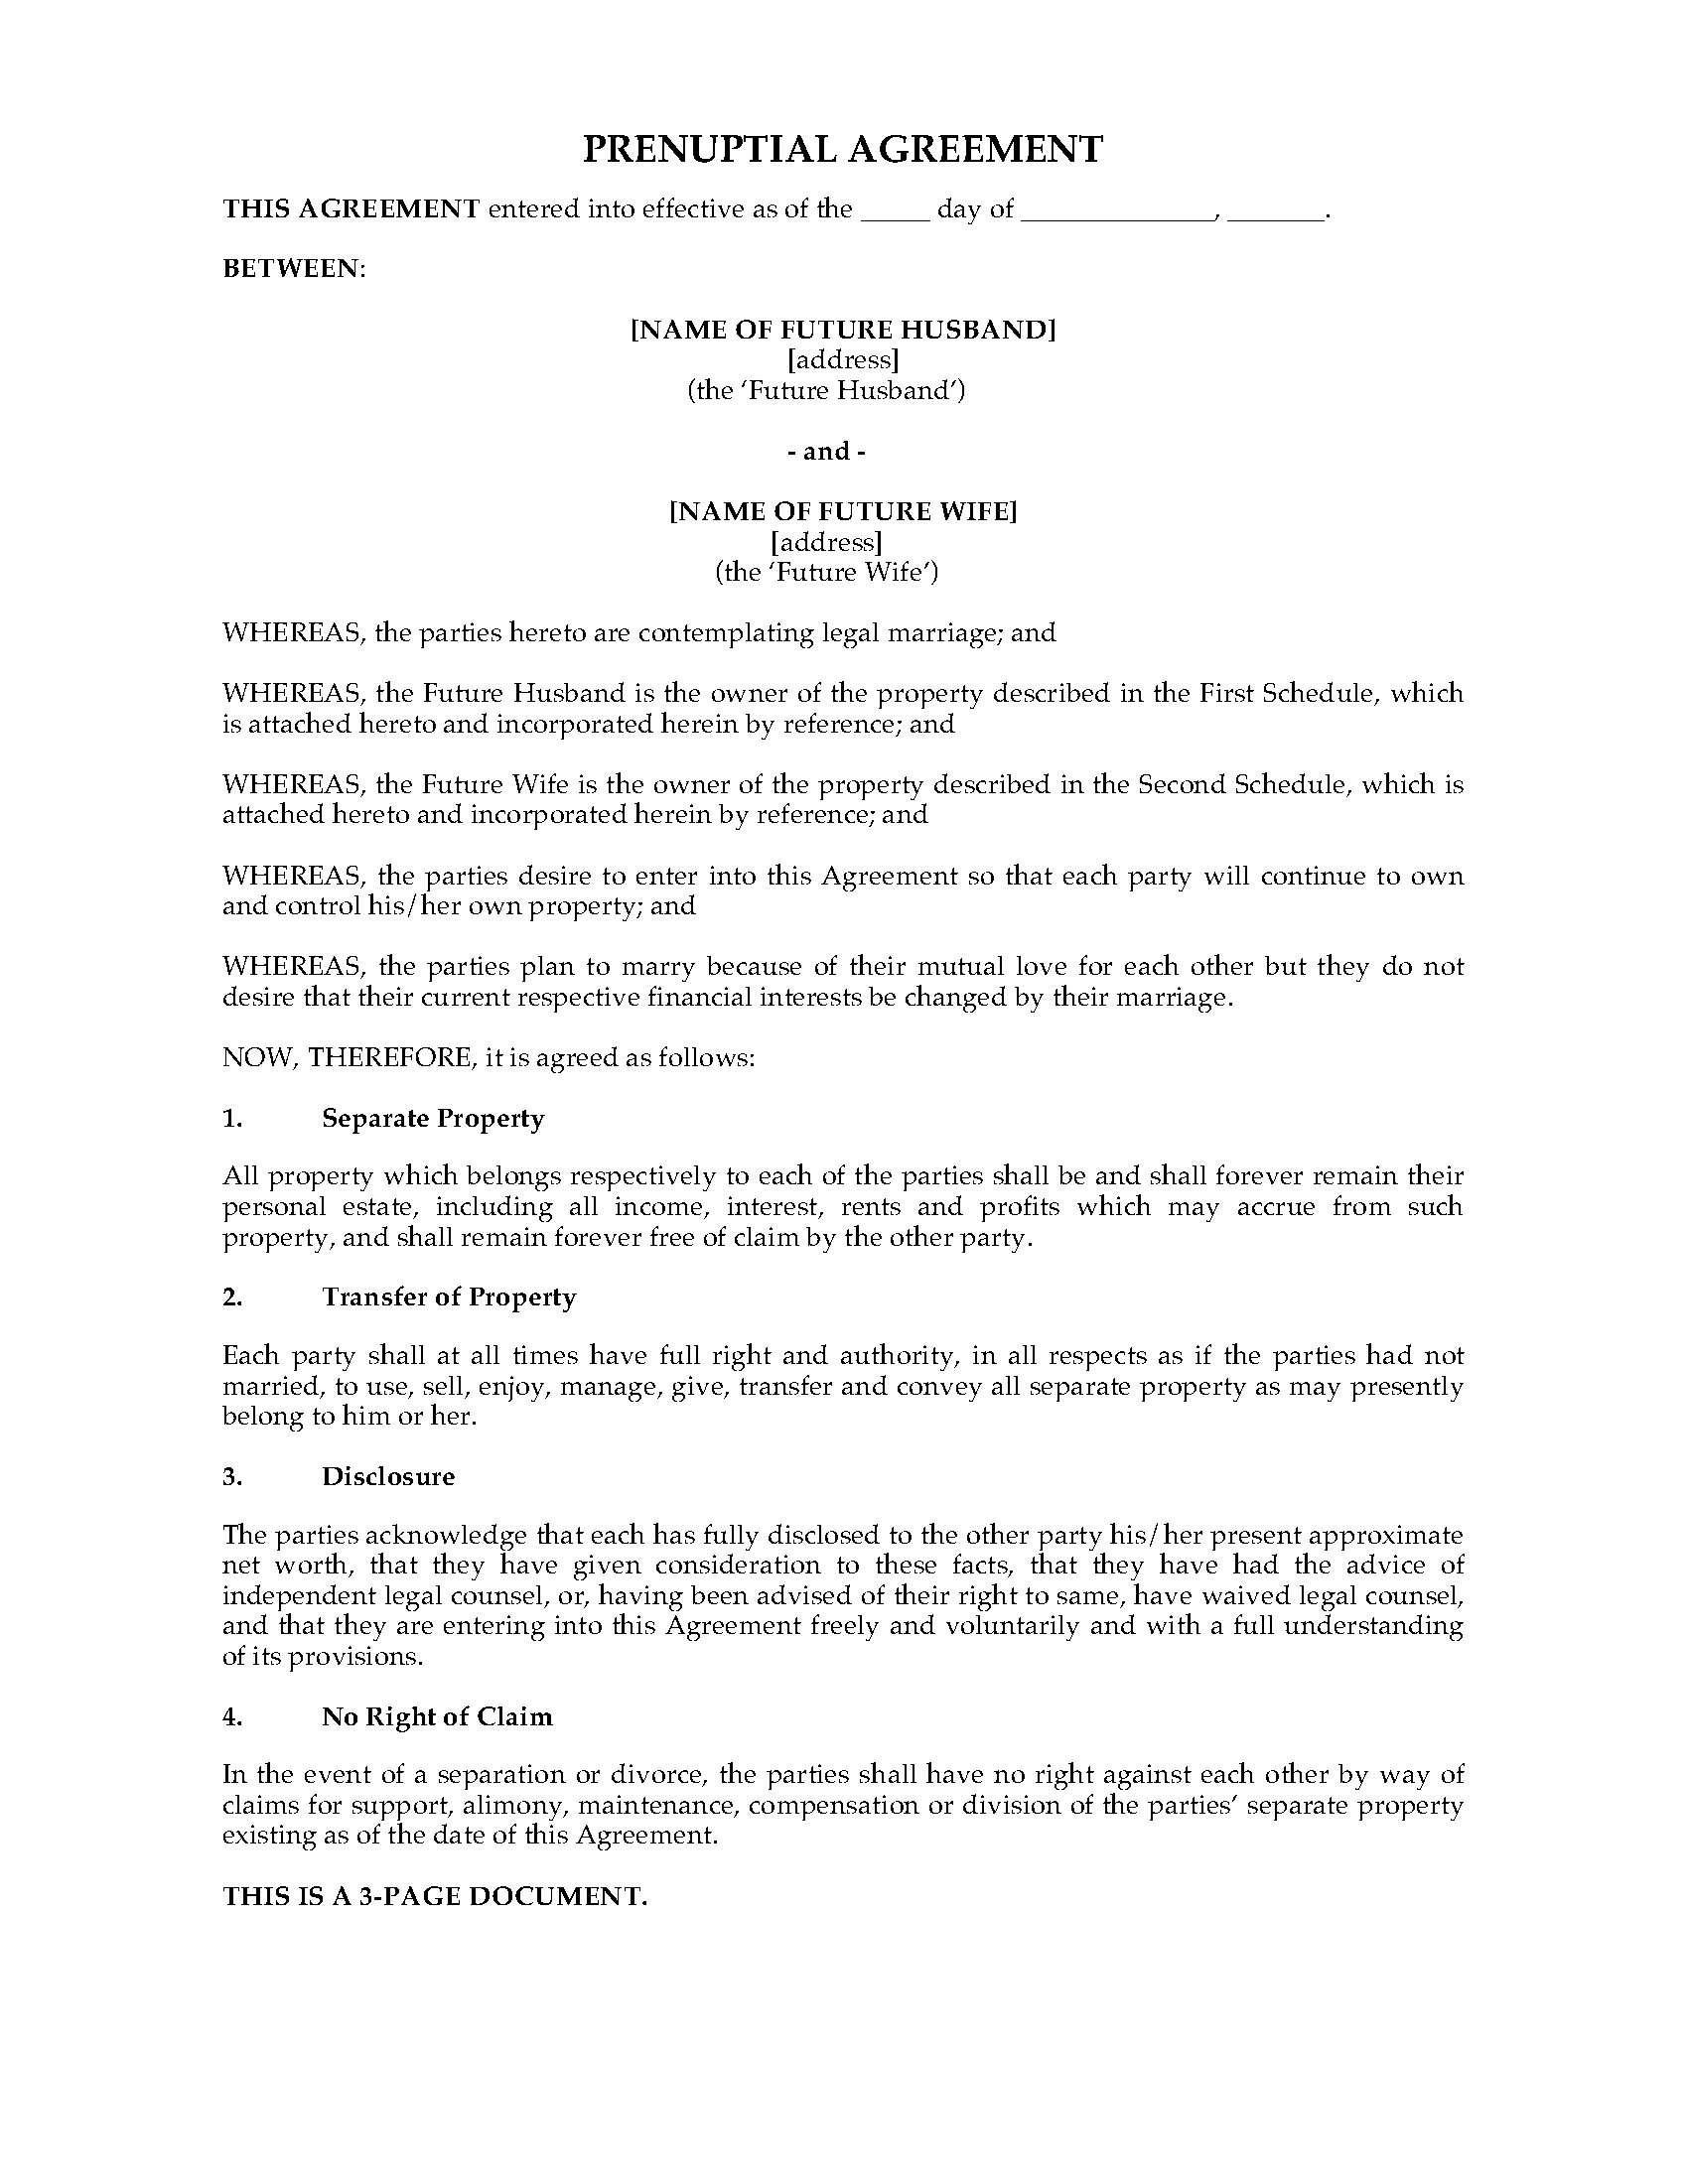 Uk Prenuptial Agreement  Legal Forms And Business Templates With Regard To Uk Prenuptial Agreement Template